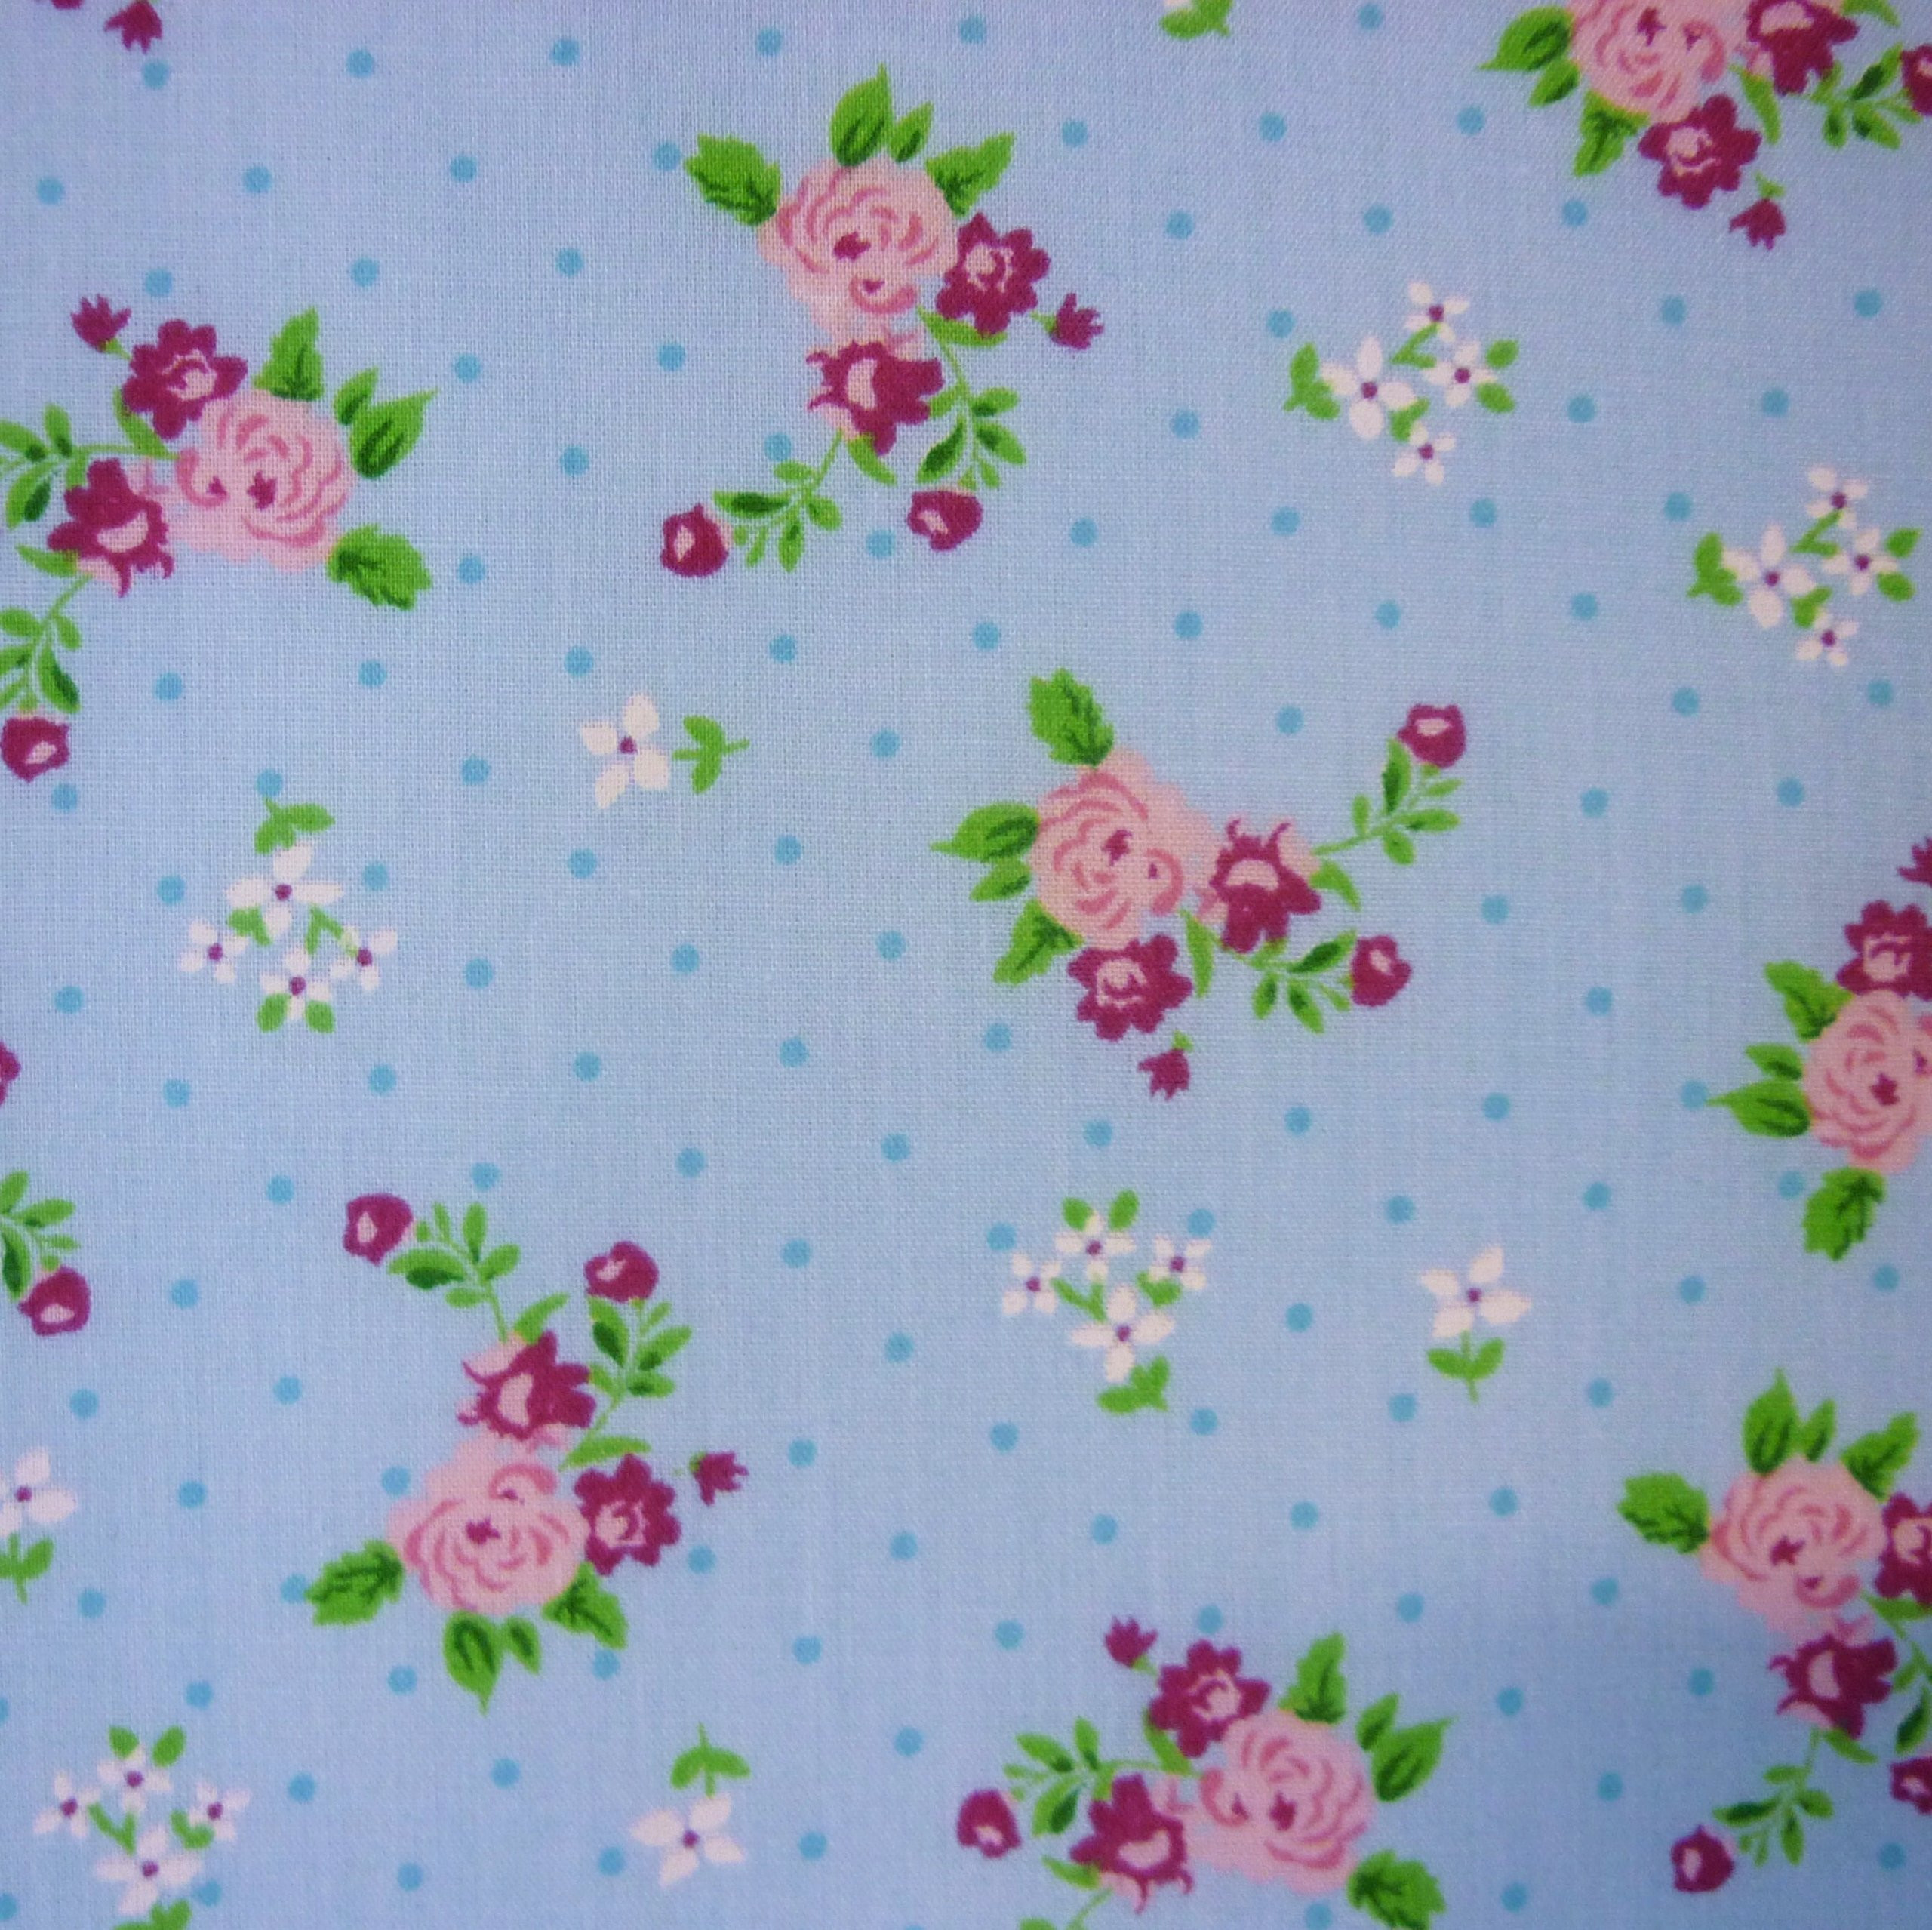 Blue Polka Dot Polycotton Fabric with Roses and Small Flower Print Per Metre by